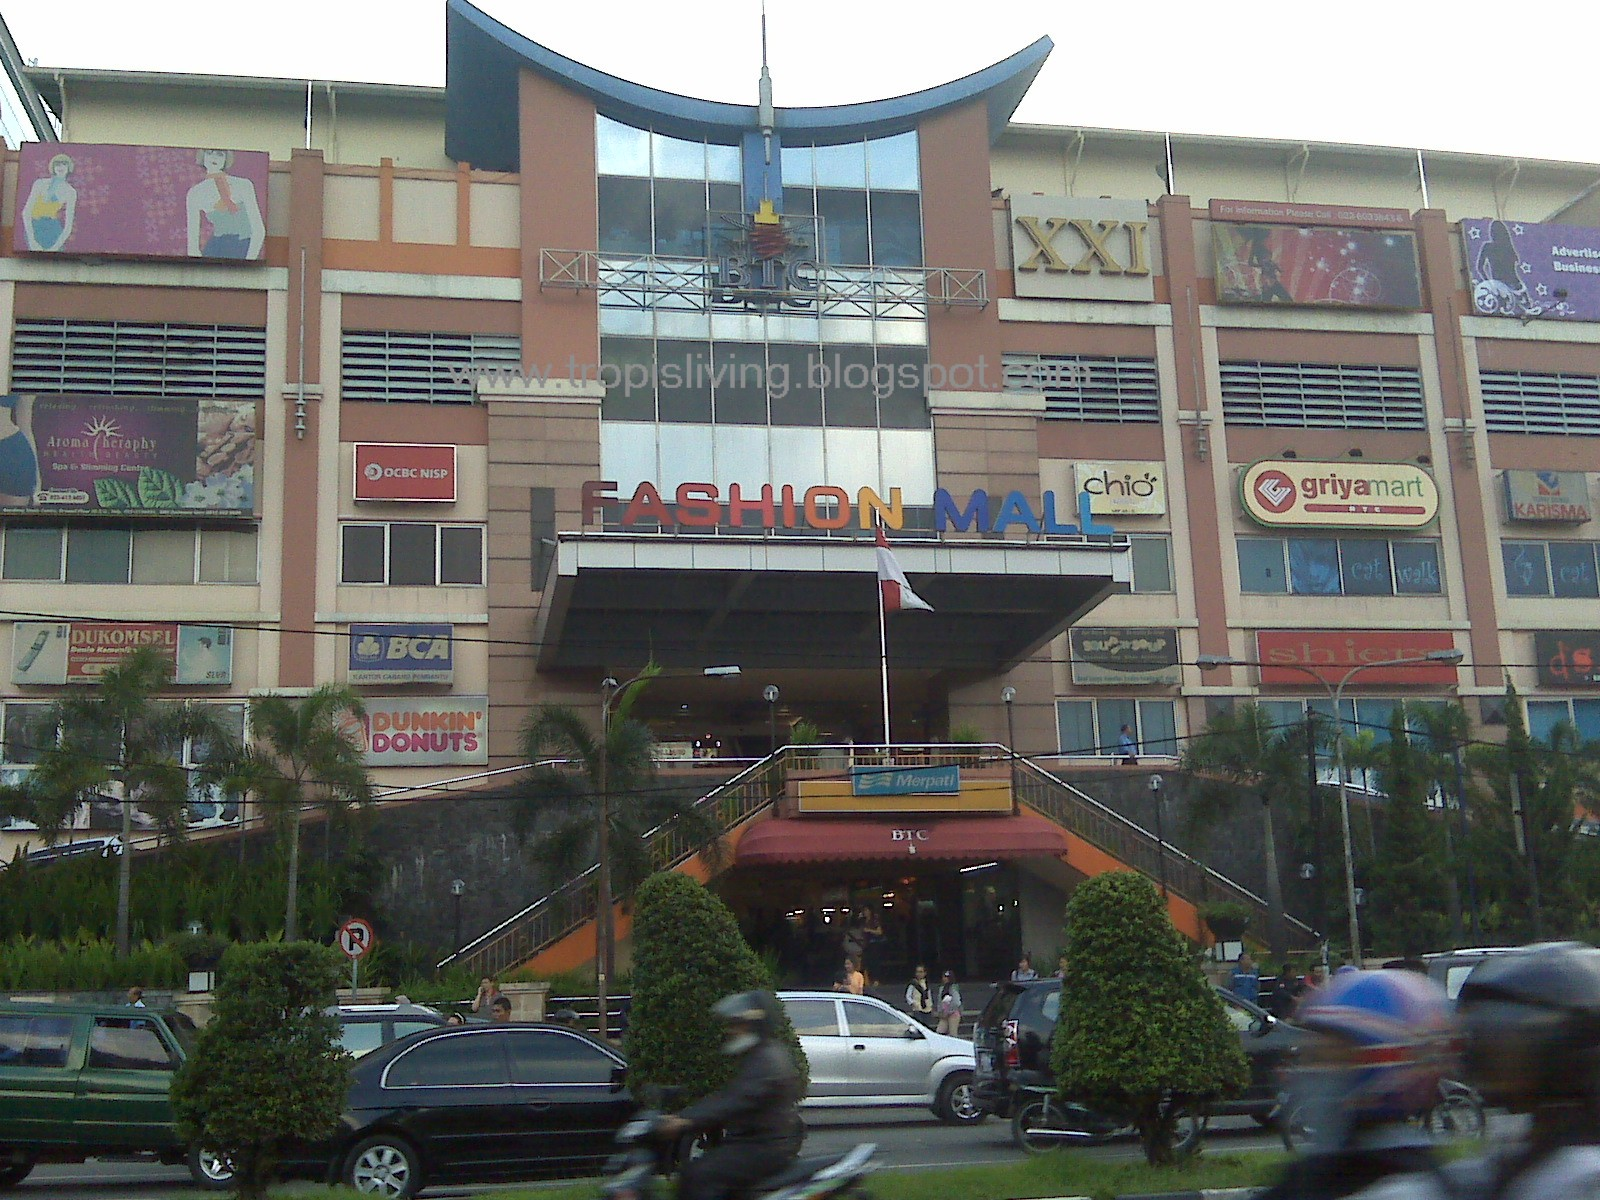 Fashion Mall Bandung Uniquely Indonesia